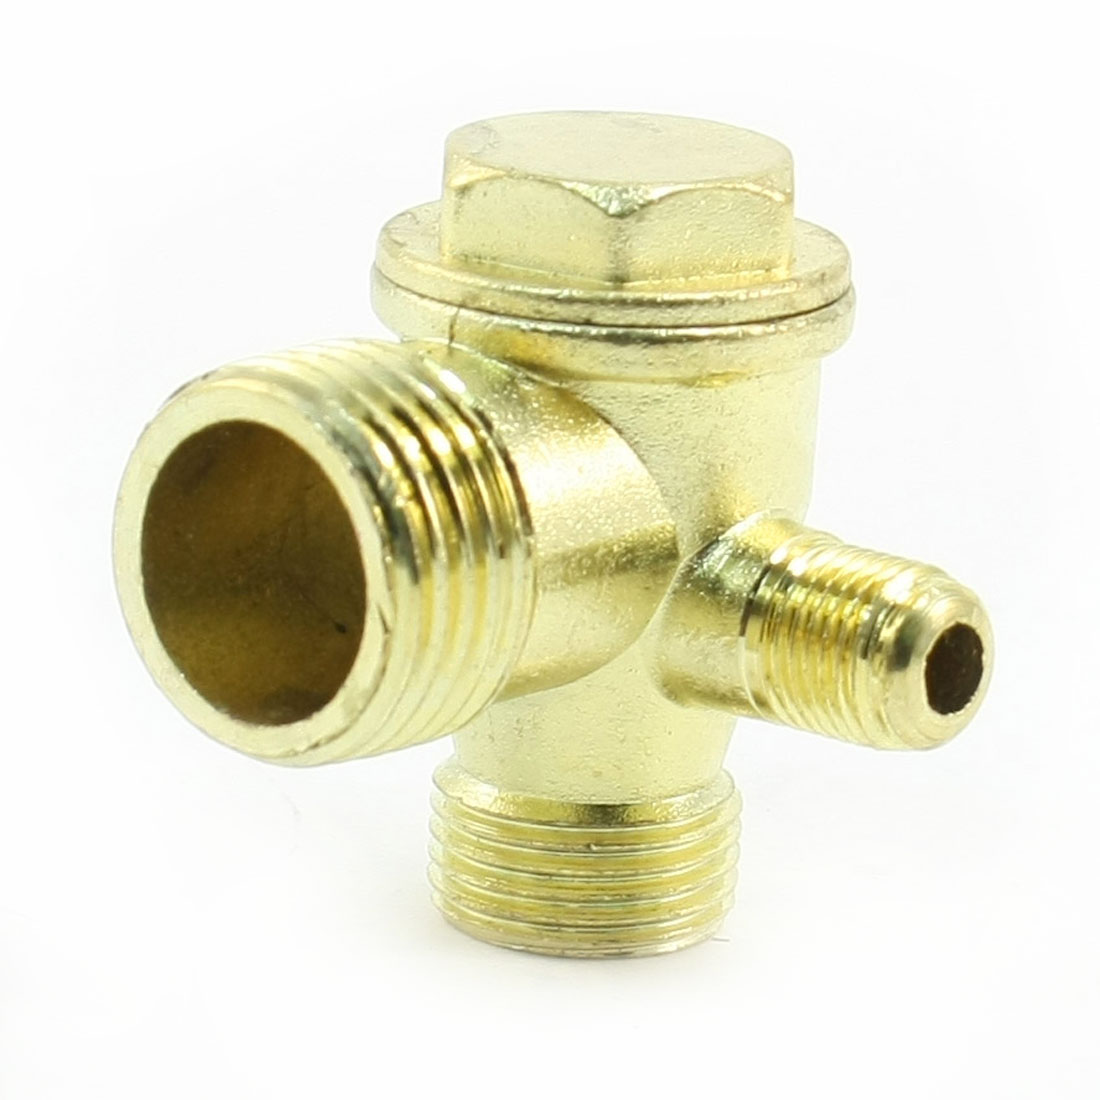 Copper Tone 3-way Air Compressor Fittings Threaded Check Valve